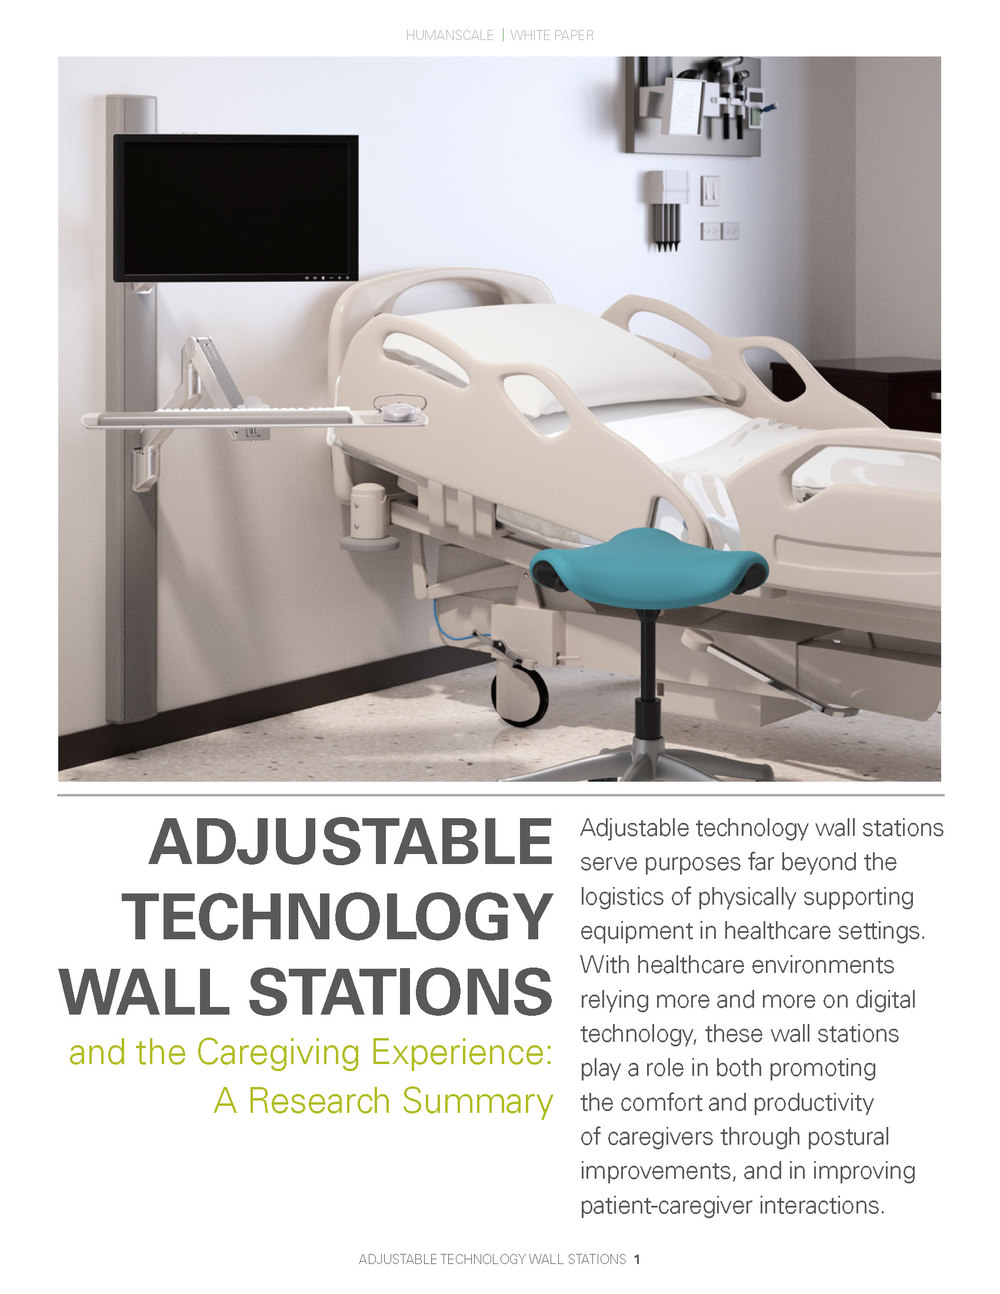 Adjustable Technology Wall Stations and the Caregiving Experience: courtesy of Humanscale